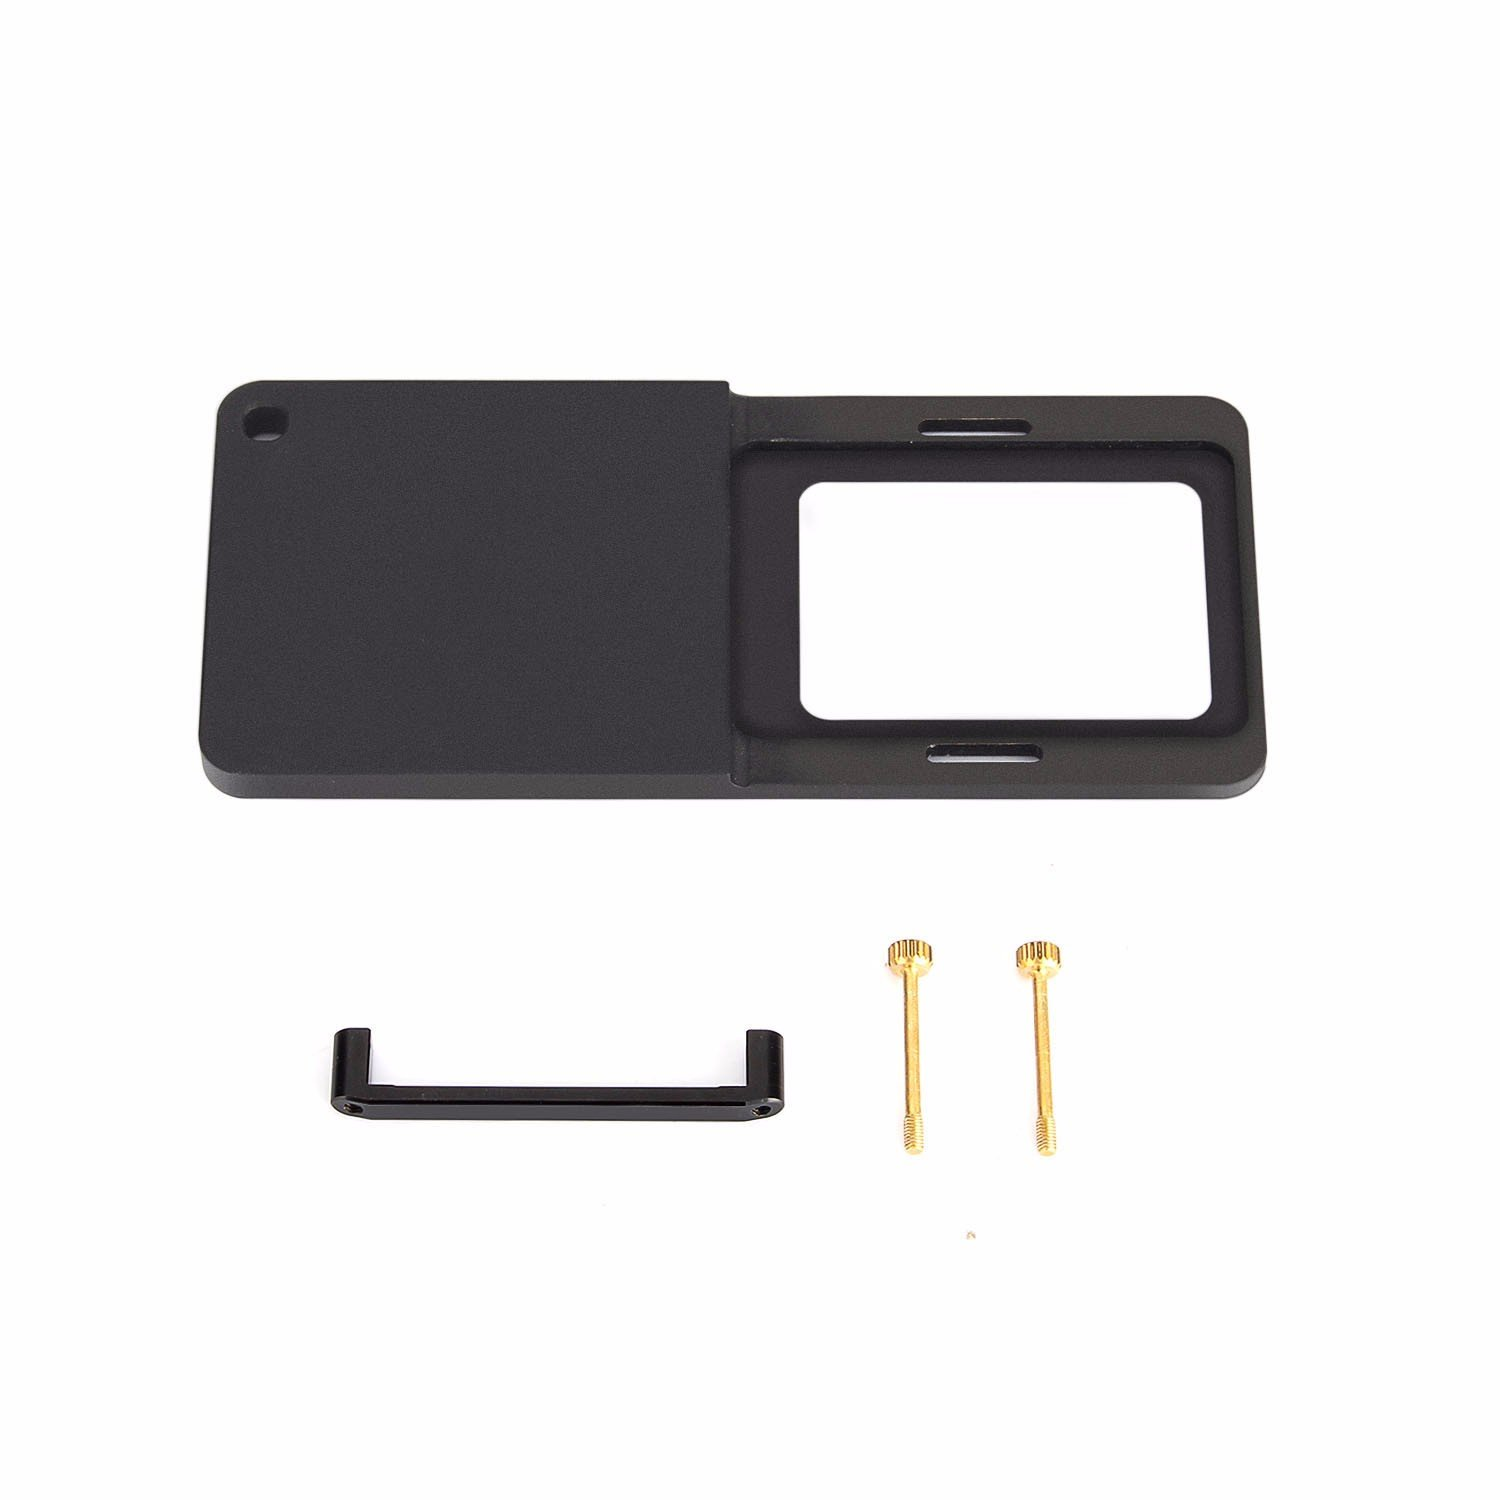 HolaFoto Plate for Feiyu SPG & Zhiyun Smooth Q/ C / C+ / SMOOTH-II and III Handheld Stabilizer Gimbal to Connects Gopro Hero 6 / 5 / 4 / 3 / 3+ Camera (Plate Only)